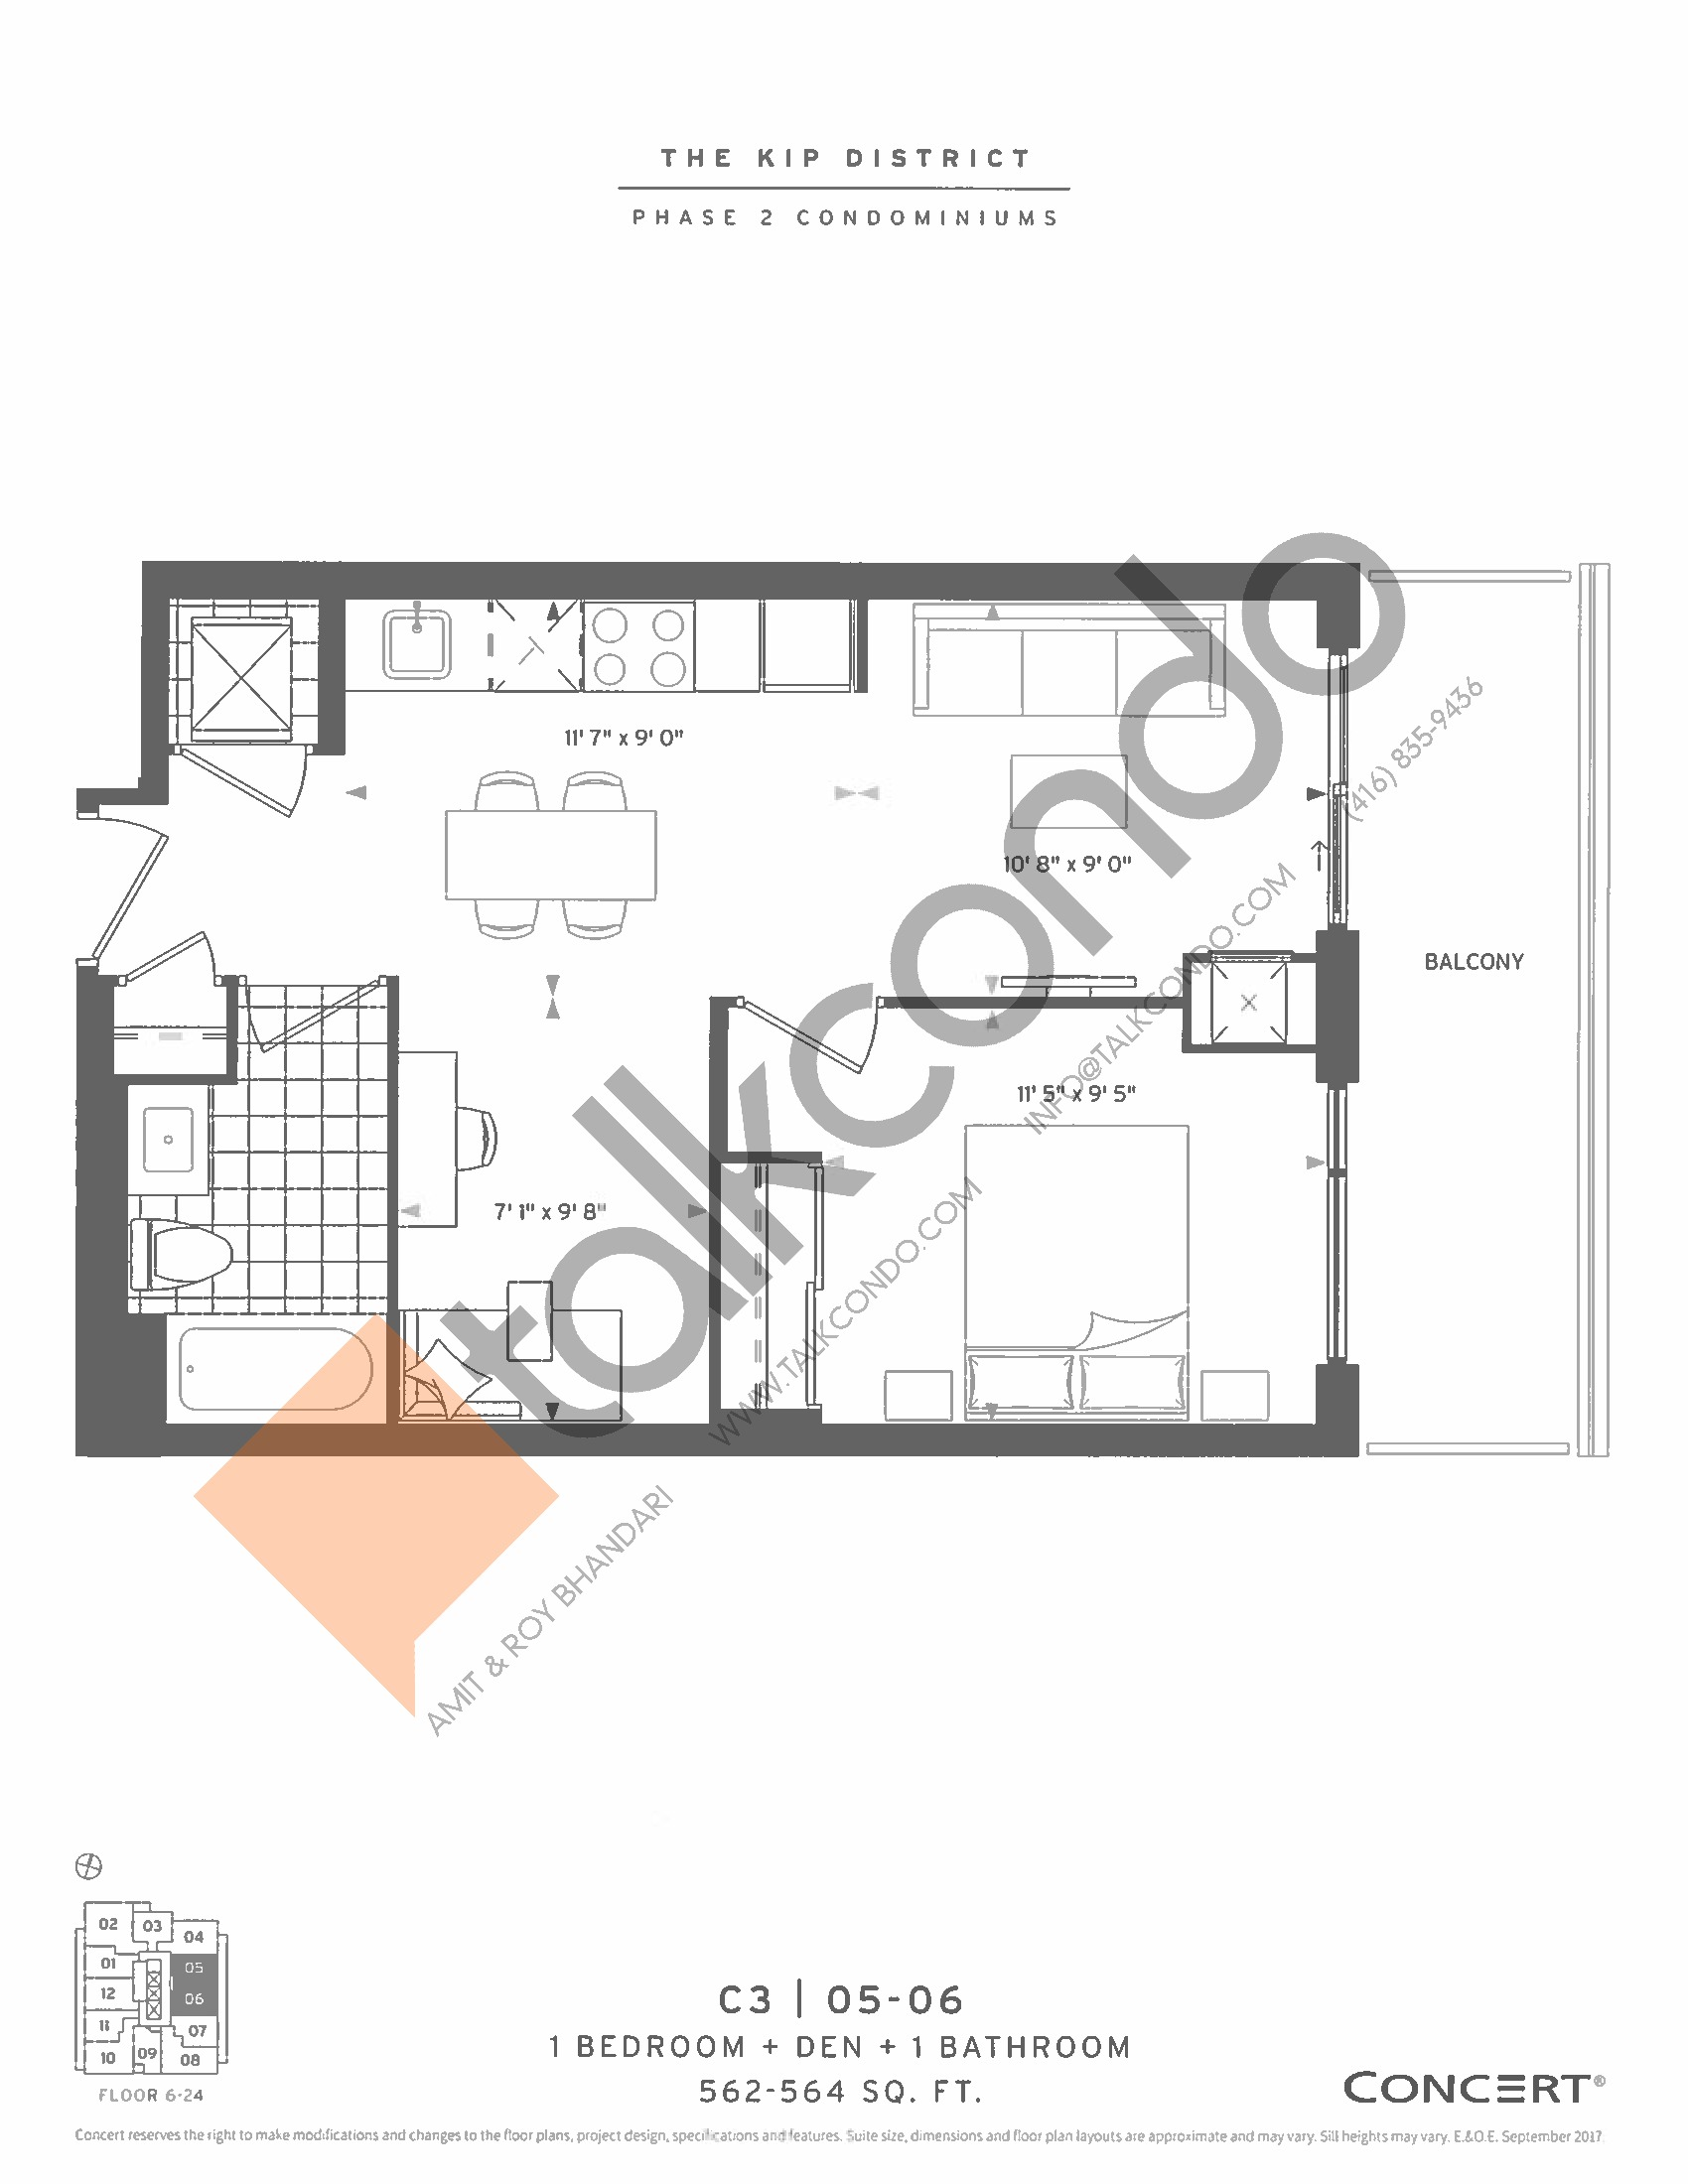 C3 | 05-06 Floor Plan at The Kip District Phase 2 Condos - 564 sq.ft